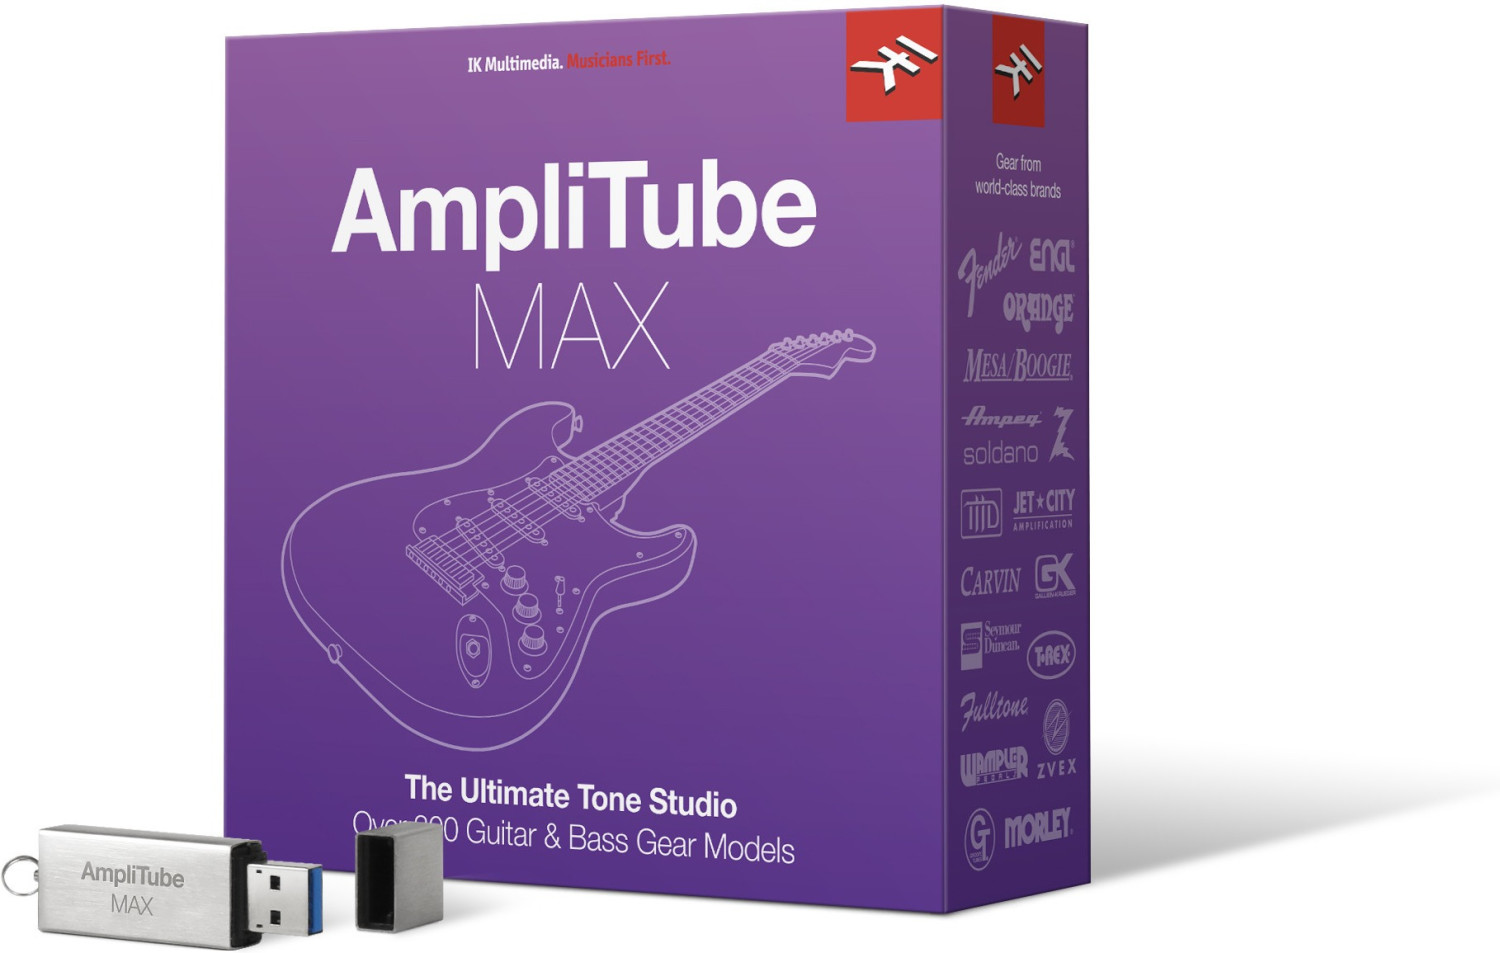 Image of IK Multimedia AmpliTube MAX